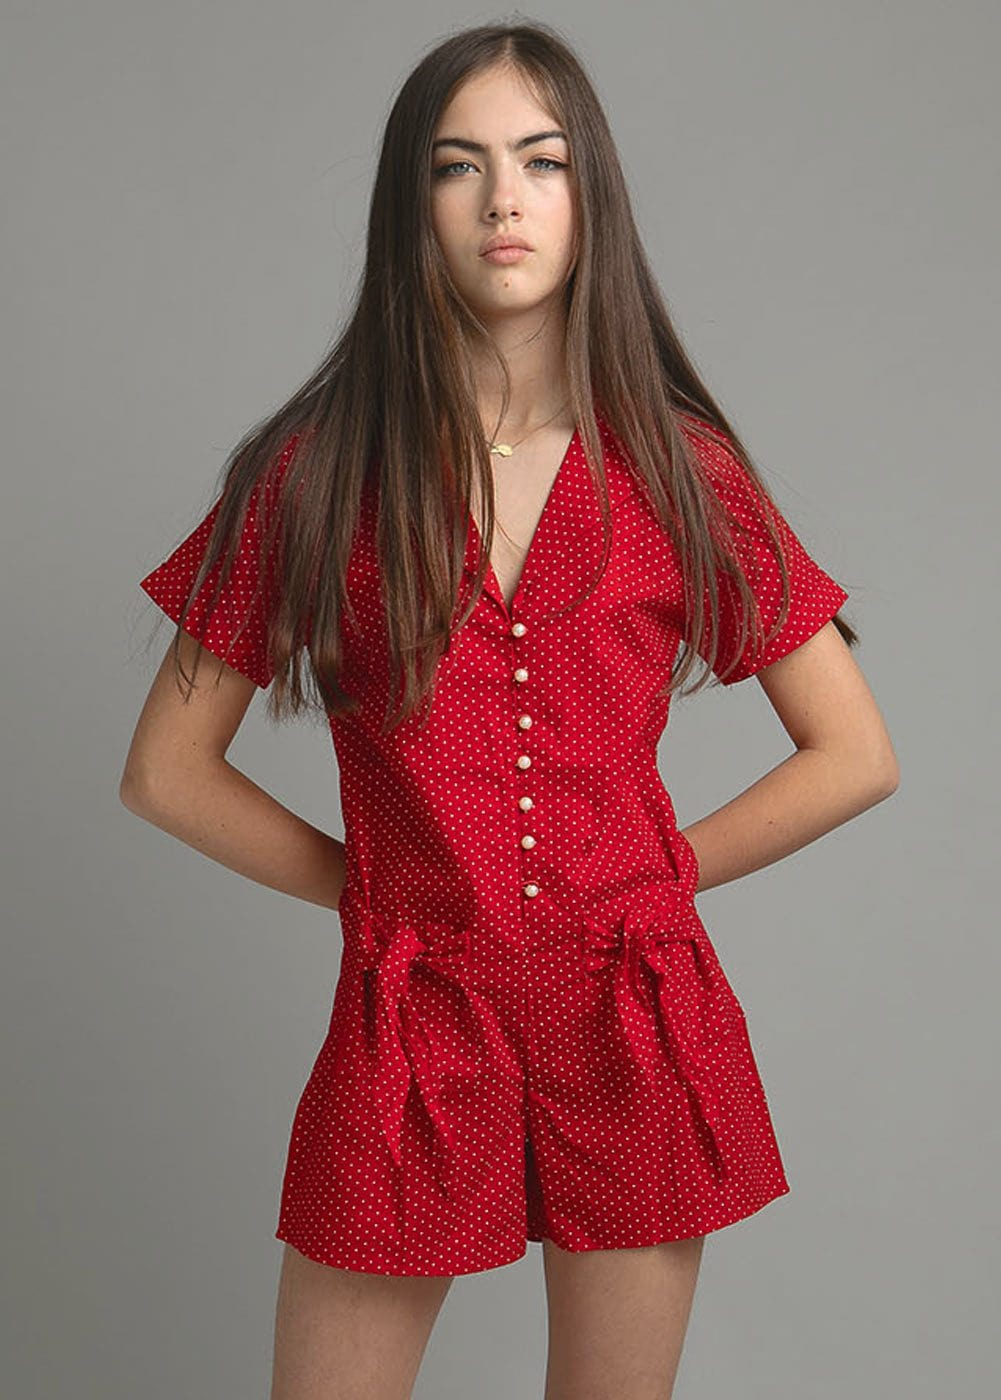 TeenzShop Youth Girls Red Polka Playsuit-SUSTAINABLE FABRIC